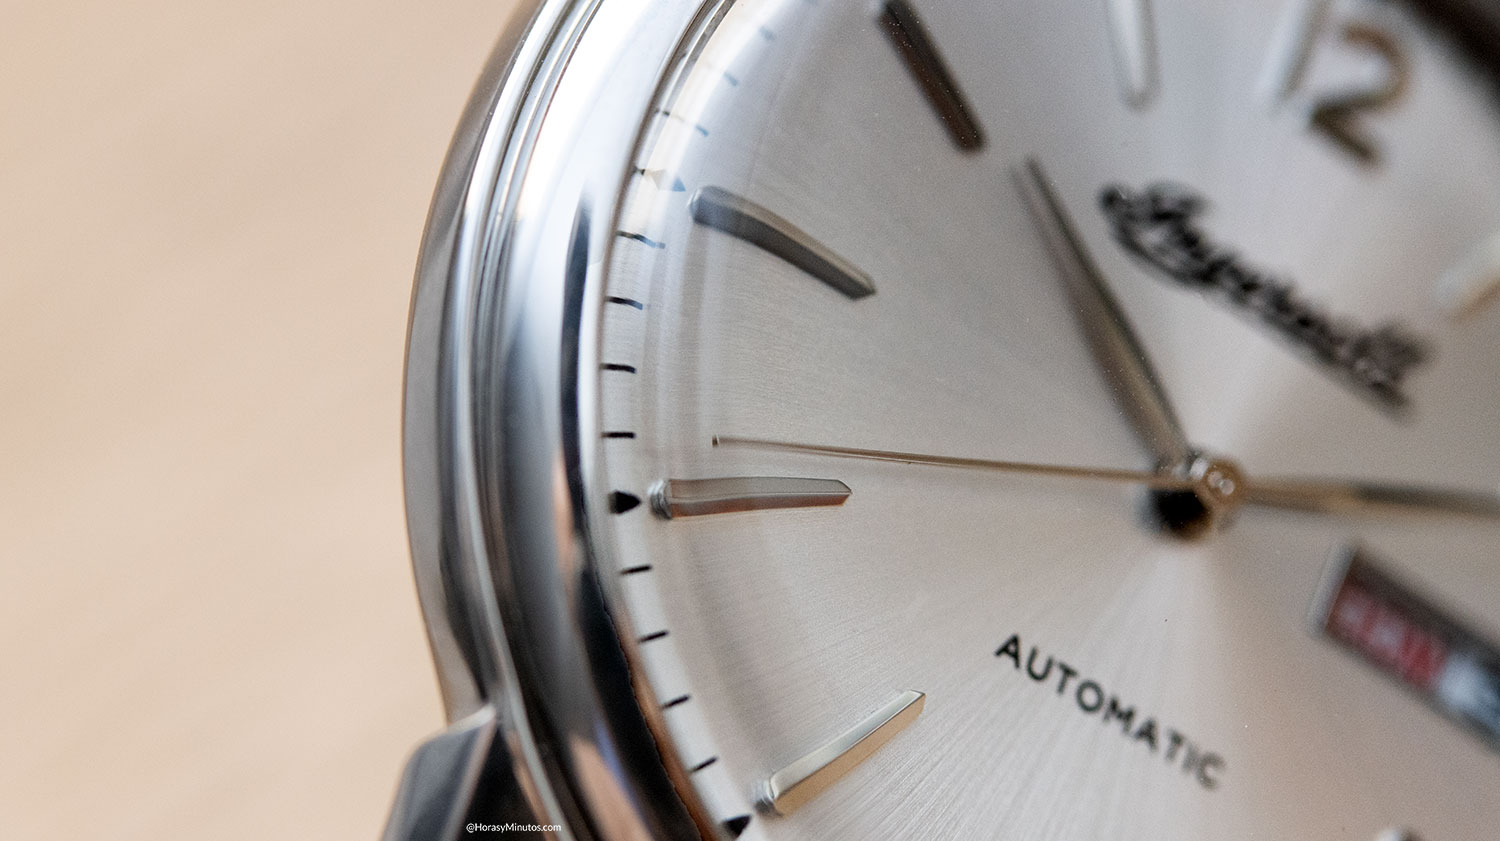 Detalle del Ingersoll New Haven Automatic